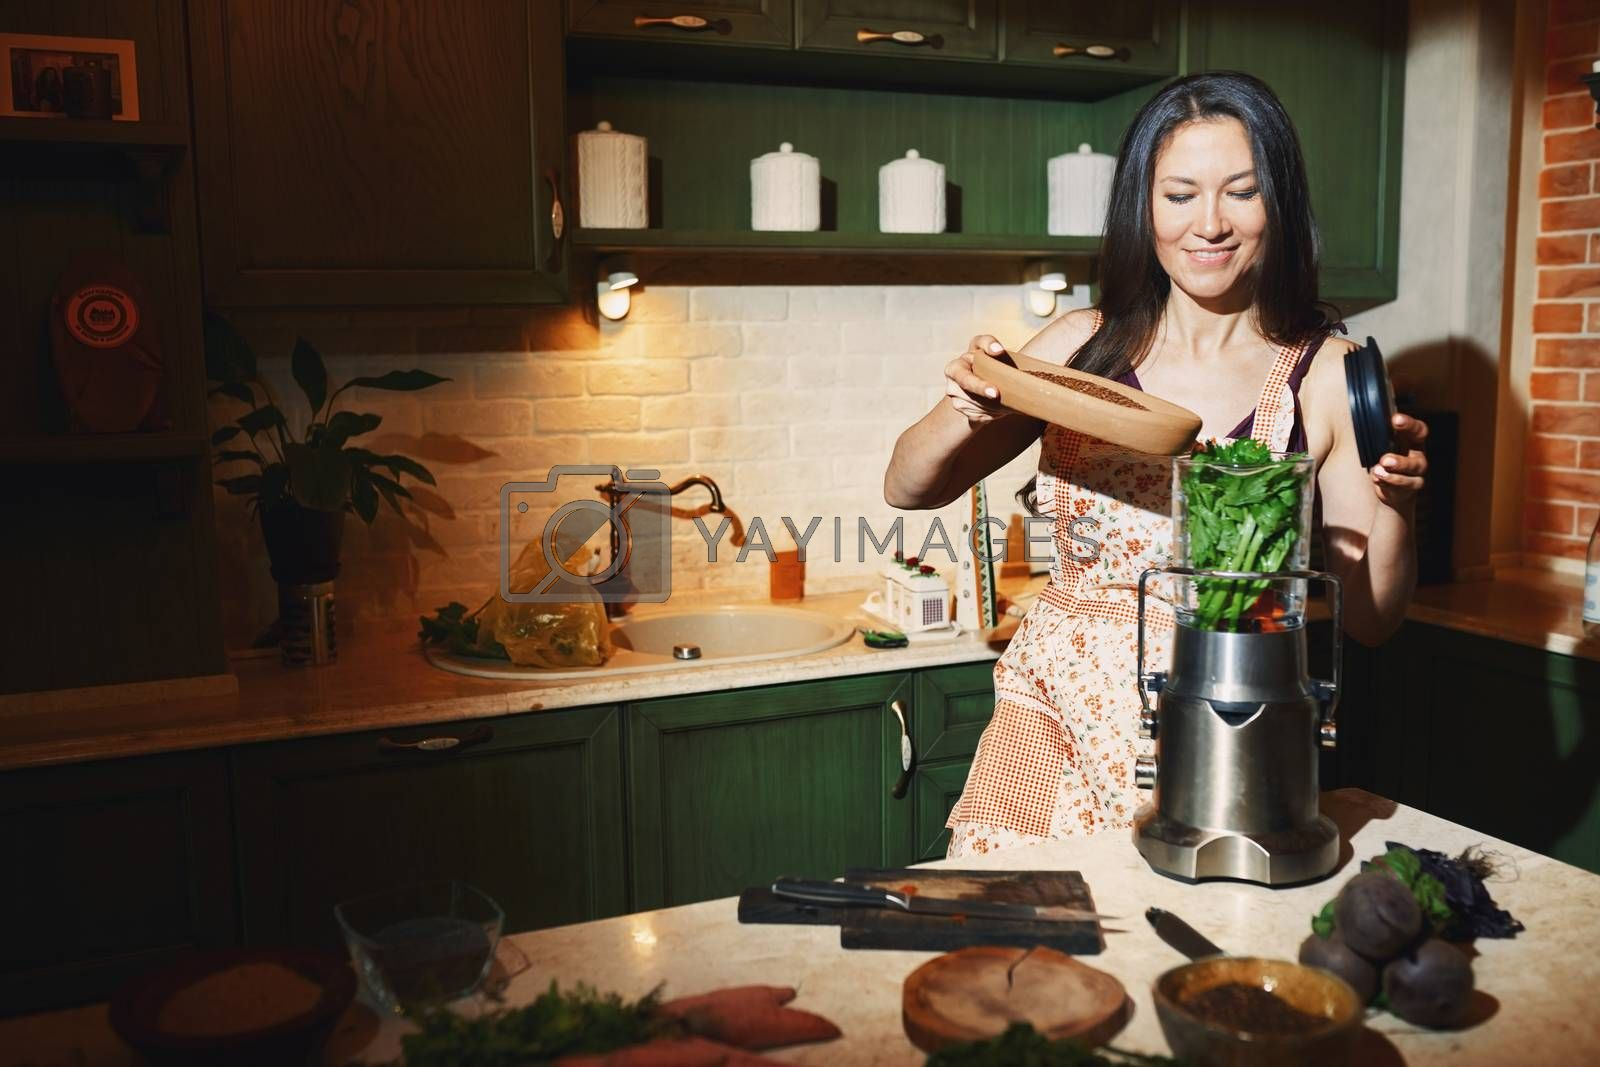 Staying at home woman using mixer for to prepare vegetarian food